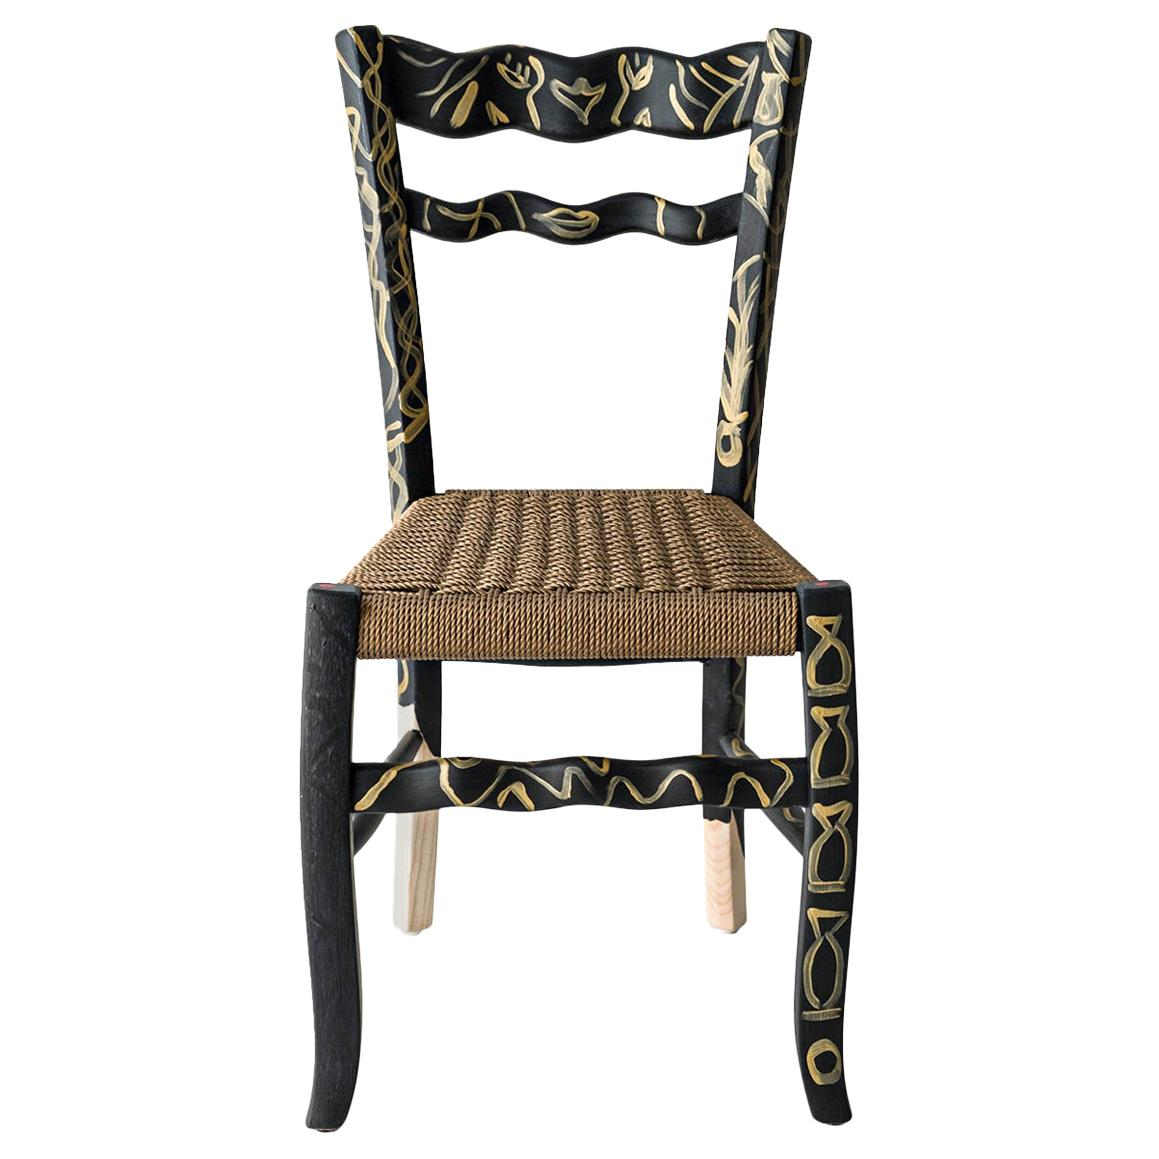 """Italian Countryside Hand Painted Wooden Chair """"A Signurina - Pupara"""""""